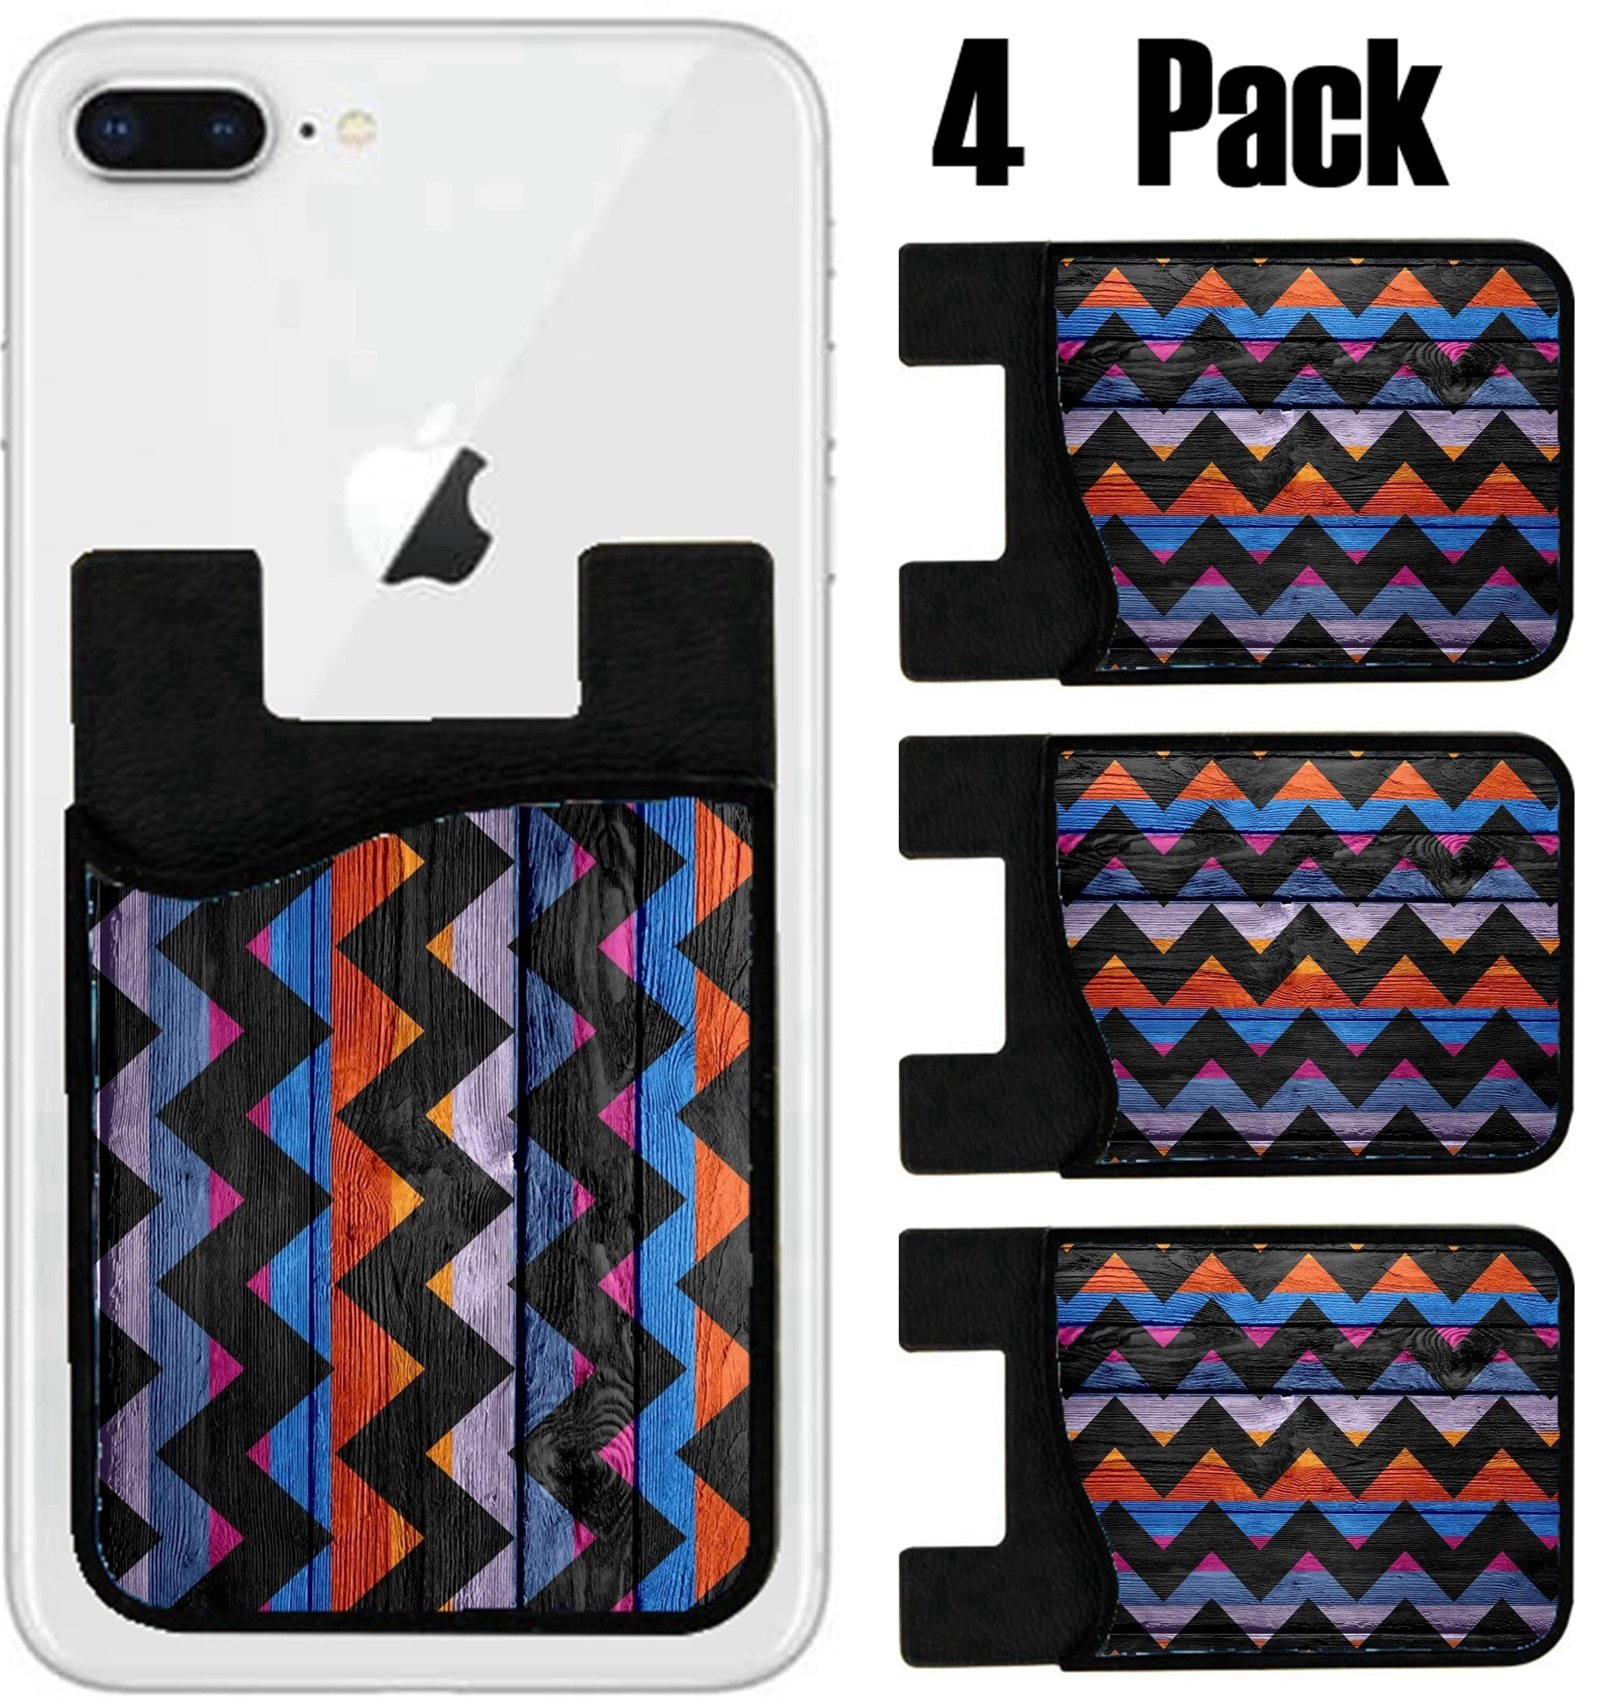 MSD Phone Card holder, sleeve/wallet for iPhone Samsung Android and all smartphones with removable microfiber screen cleaner Silicone card Caddy(4 Pack) IMAGE ID 27684911 Colorful chevron pattern text